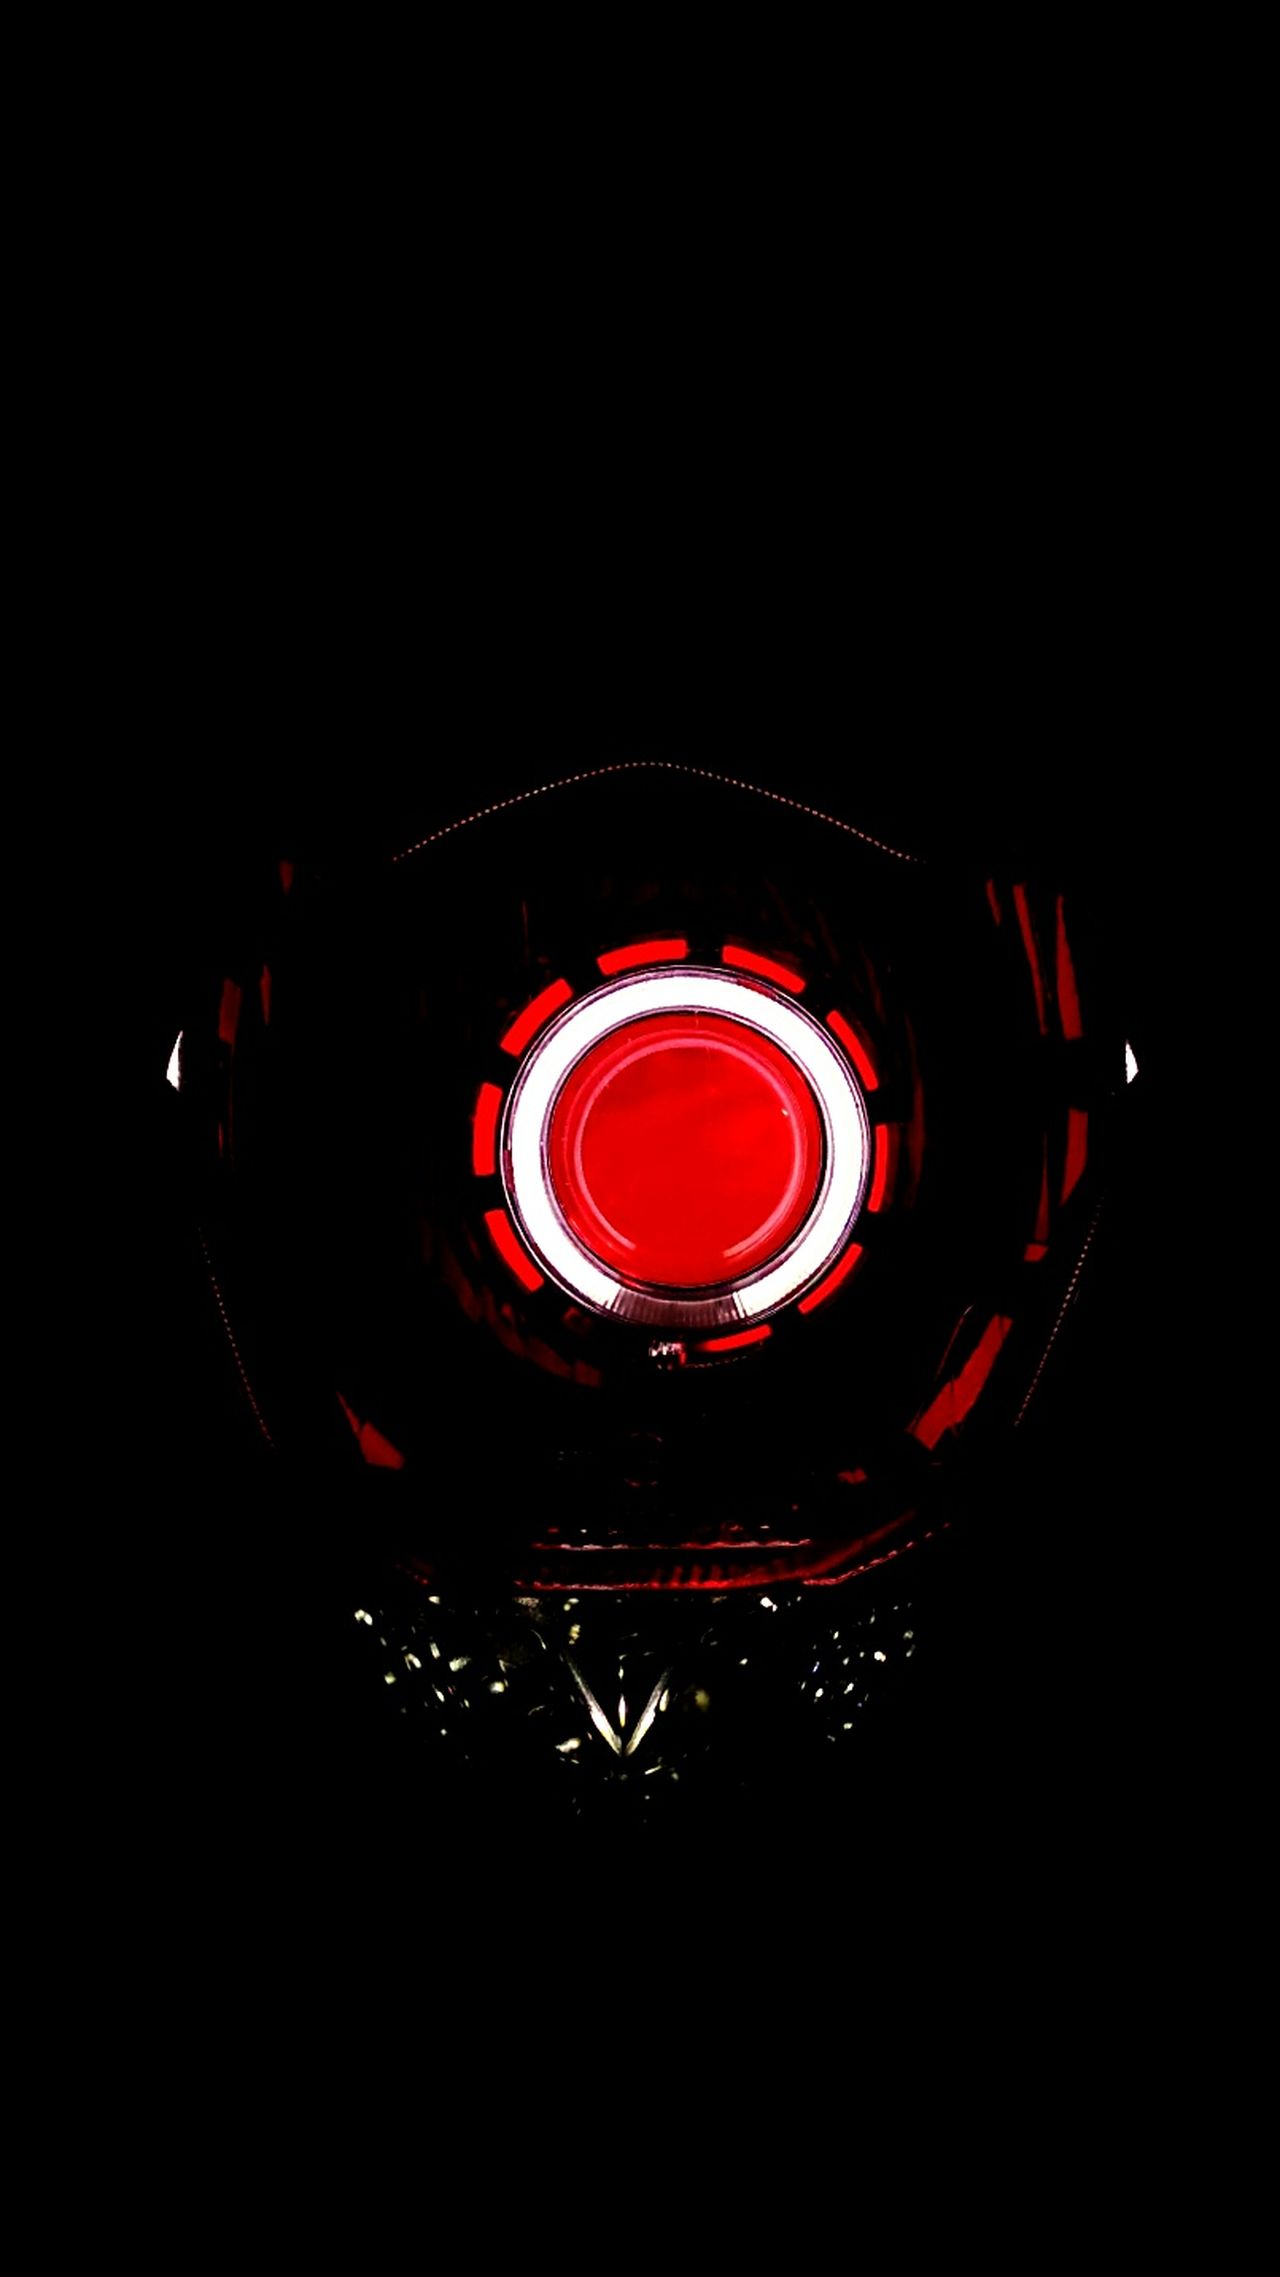 The RedHeart Lights Shadows Red Projector Headlamp Bikes Bikers Suzuki Gixxer Passion Feelgood Nightphotography Photography